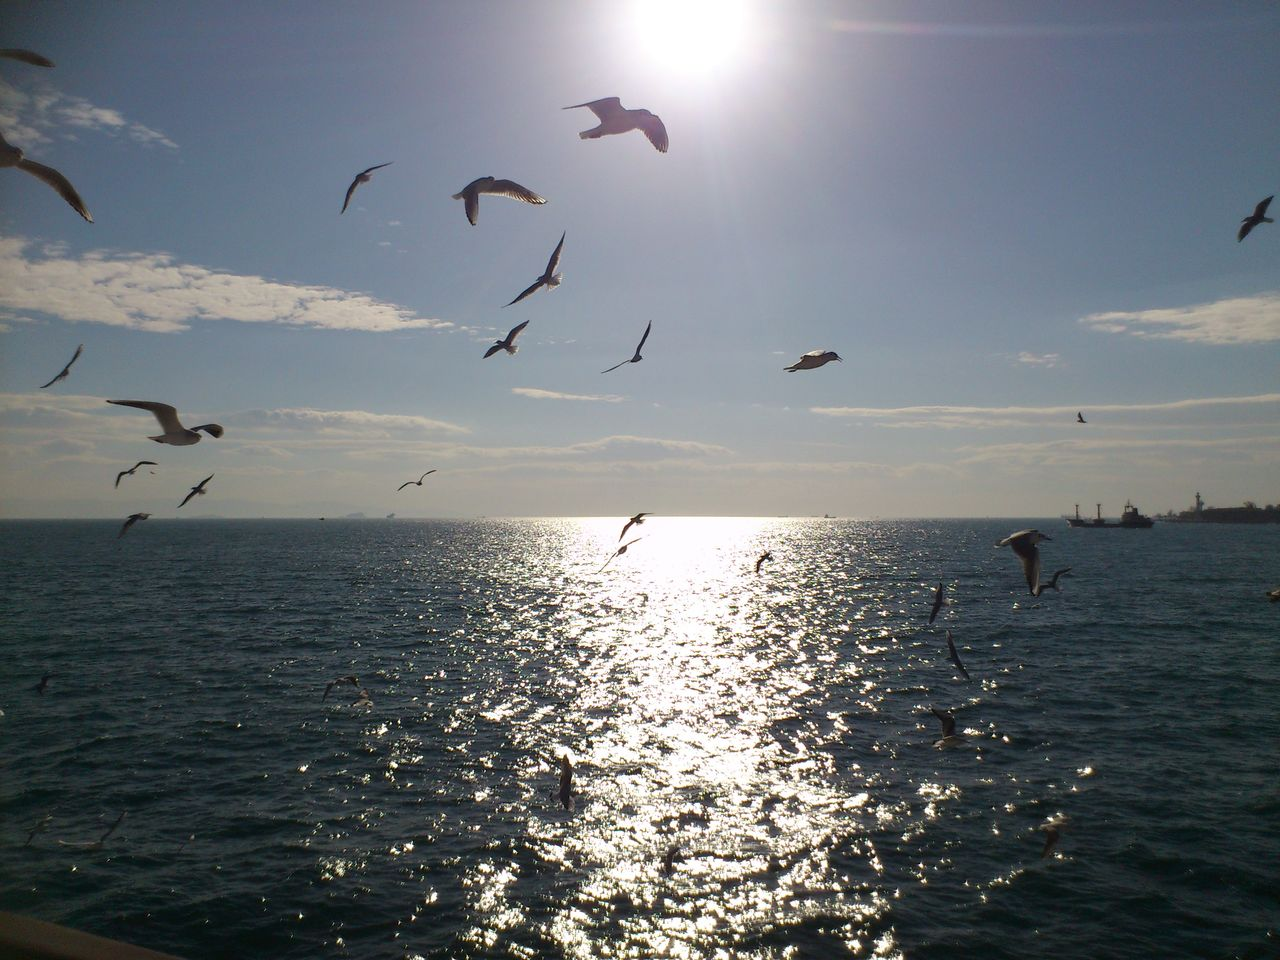 flying, bird, sea, sunlight, animal themes, nature, sunbeam, silhouette, sun, sky, mid-air, beauty in nature, animals in the wild, horizon over water, water, flock of birds, large group of animals, sunset, tranquil scene, scenics, tranquility, spread wings, outdoors, no people, day